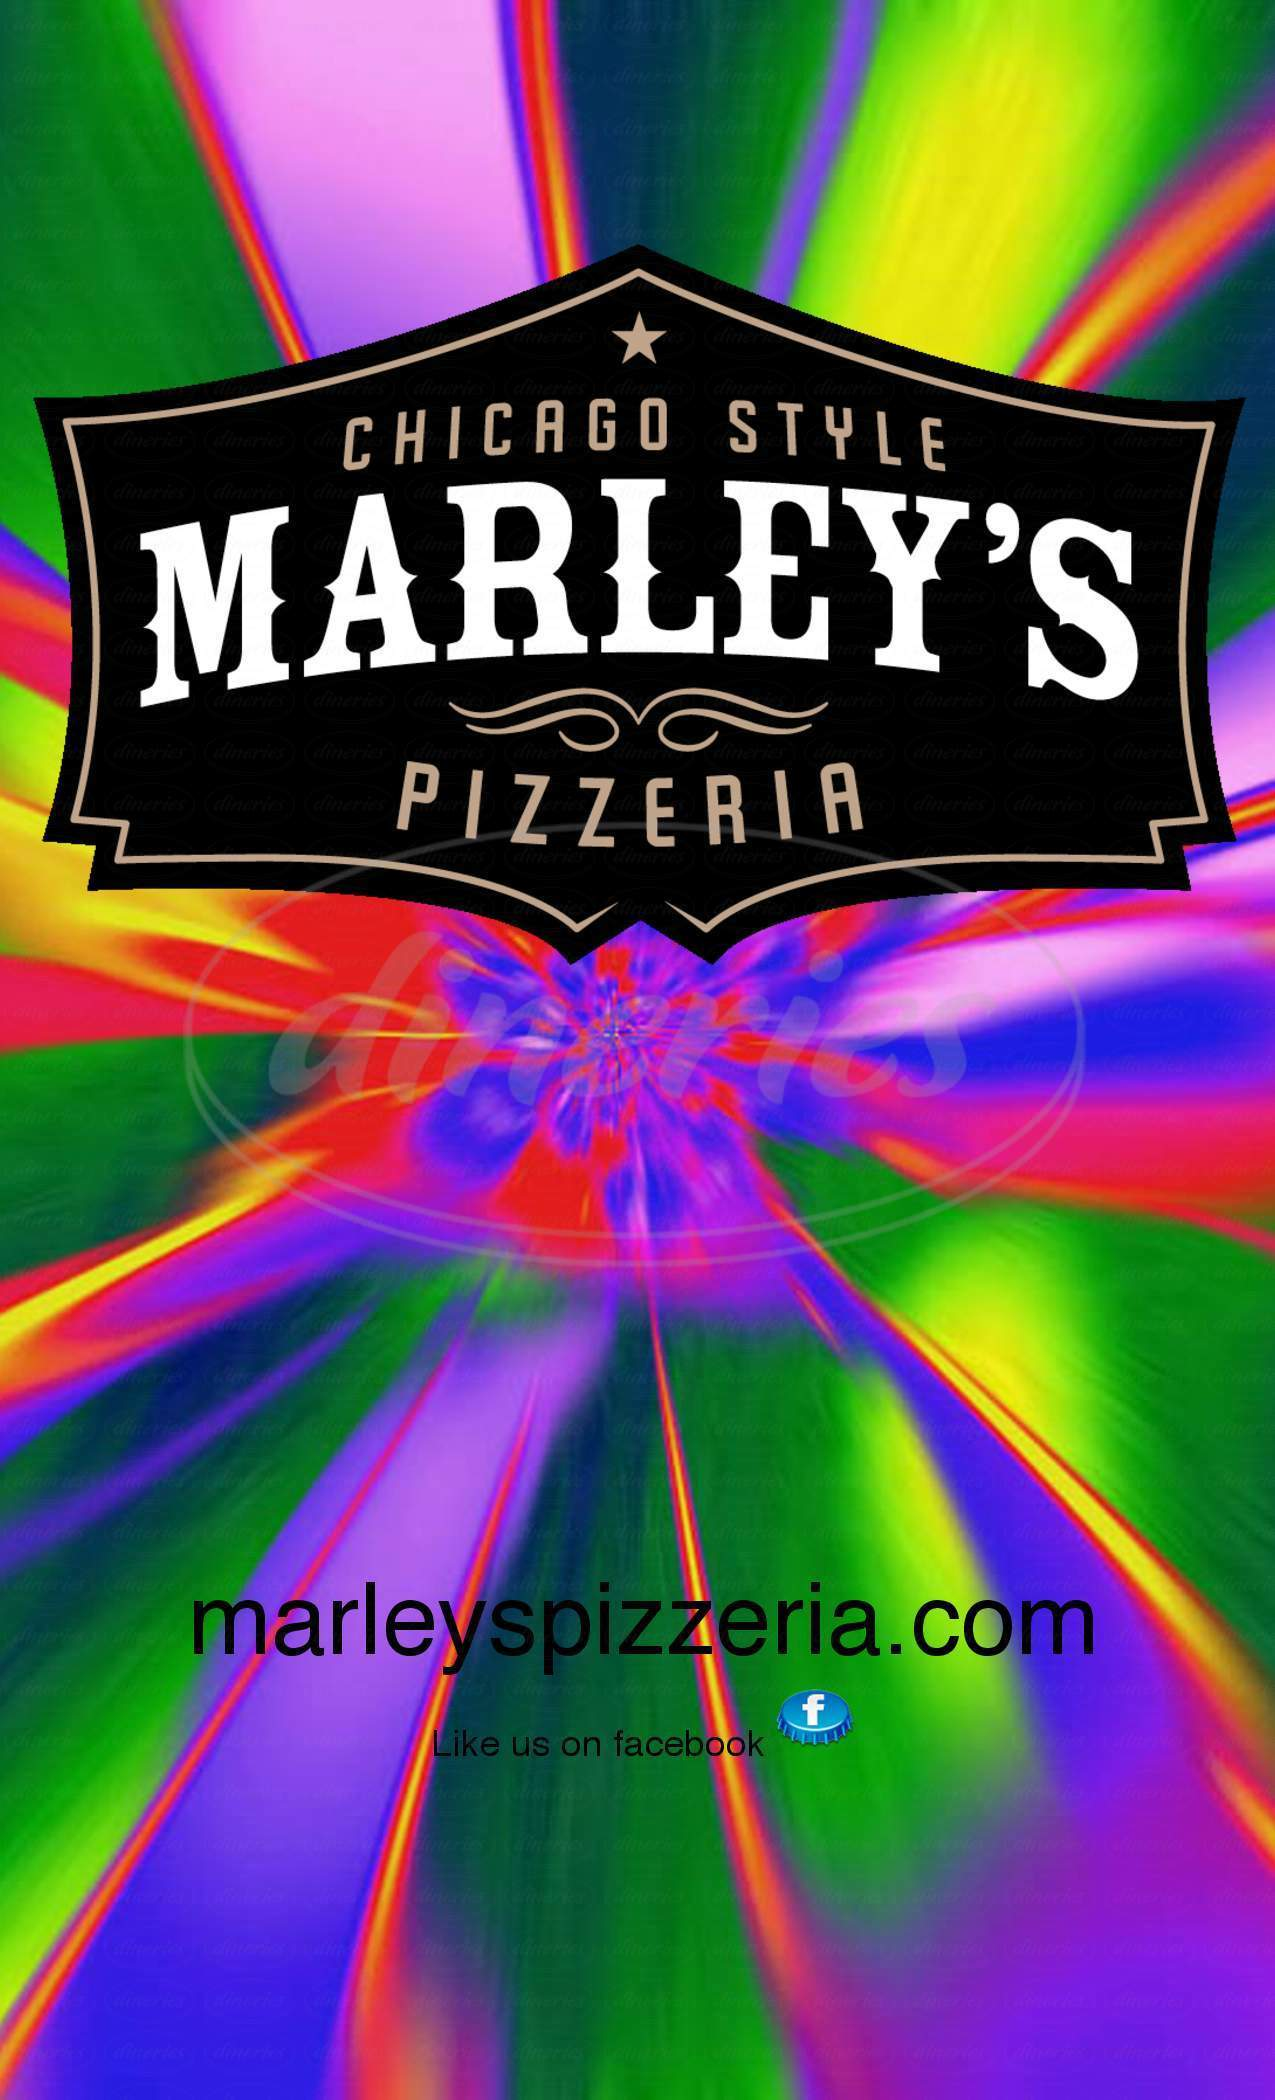 menu for Marley's Pizzeria